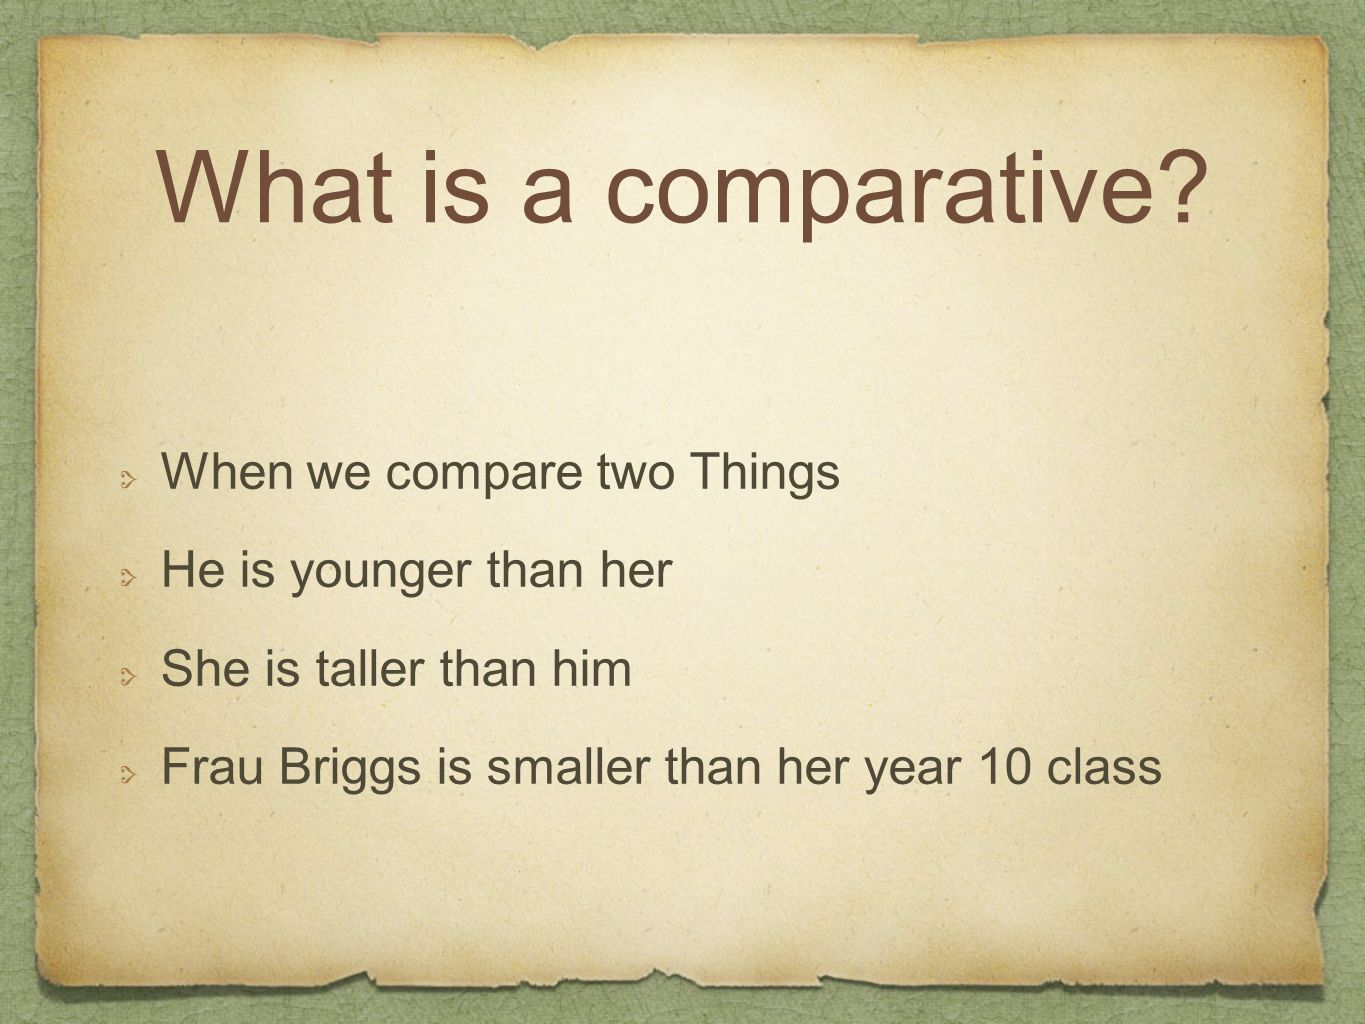 What is a comparative? When we compare two Things He is younger than her She is taller than him Frau Briggs is smaller than her year 10 class